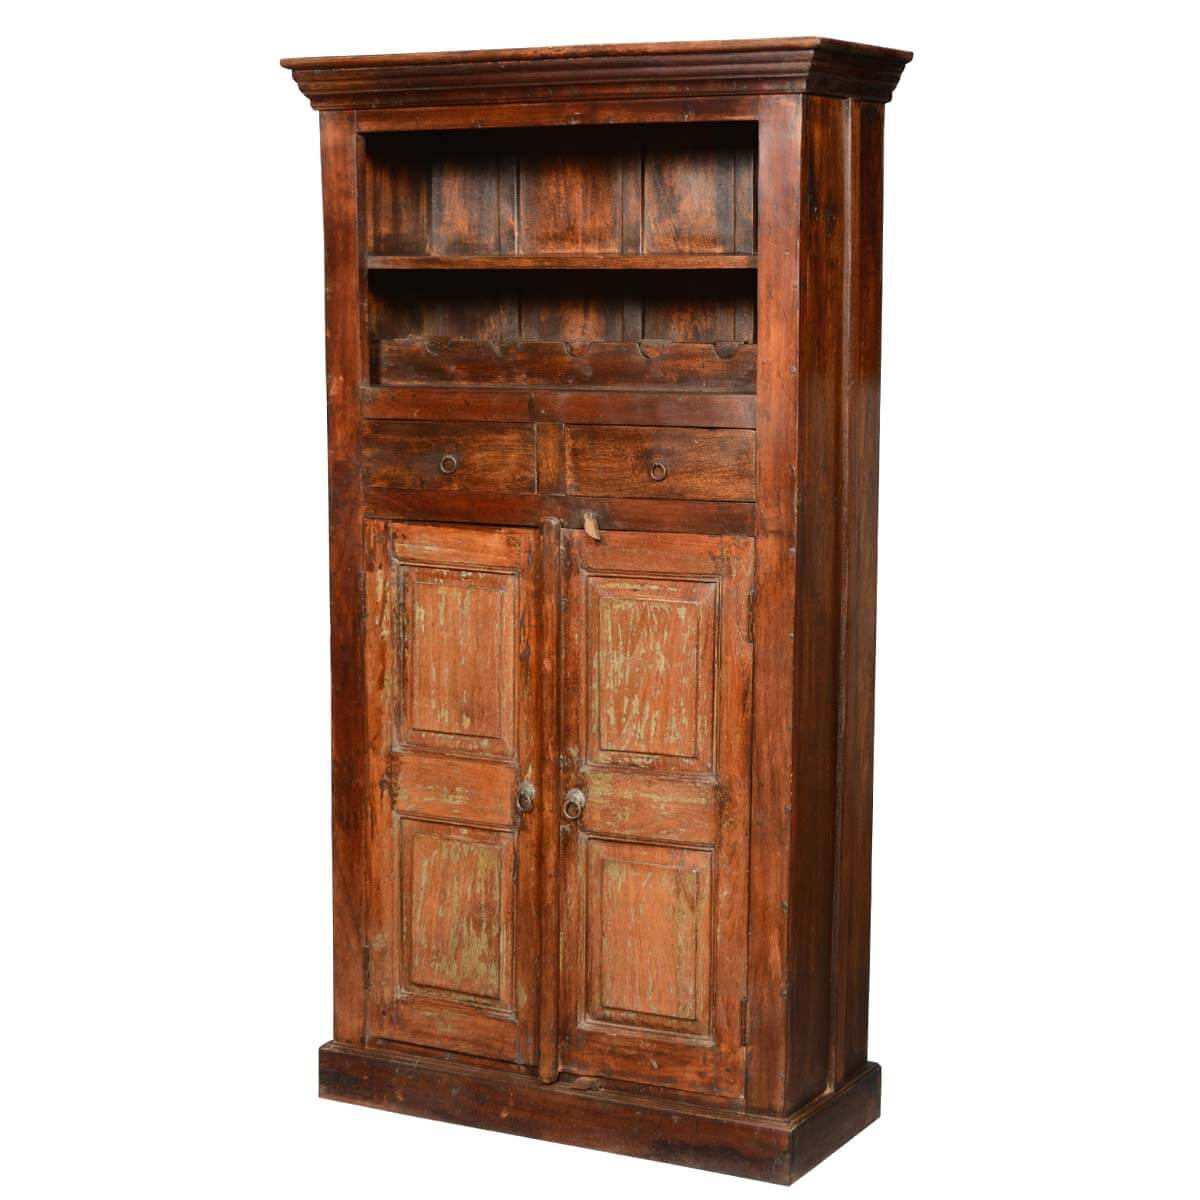 Book Of Woodworking Liquor Cabinet In Germany By Sophia